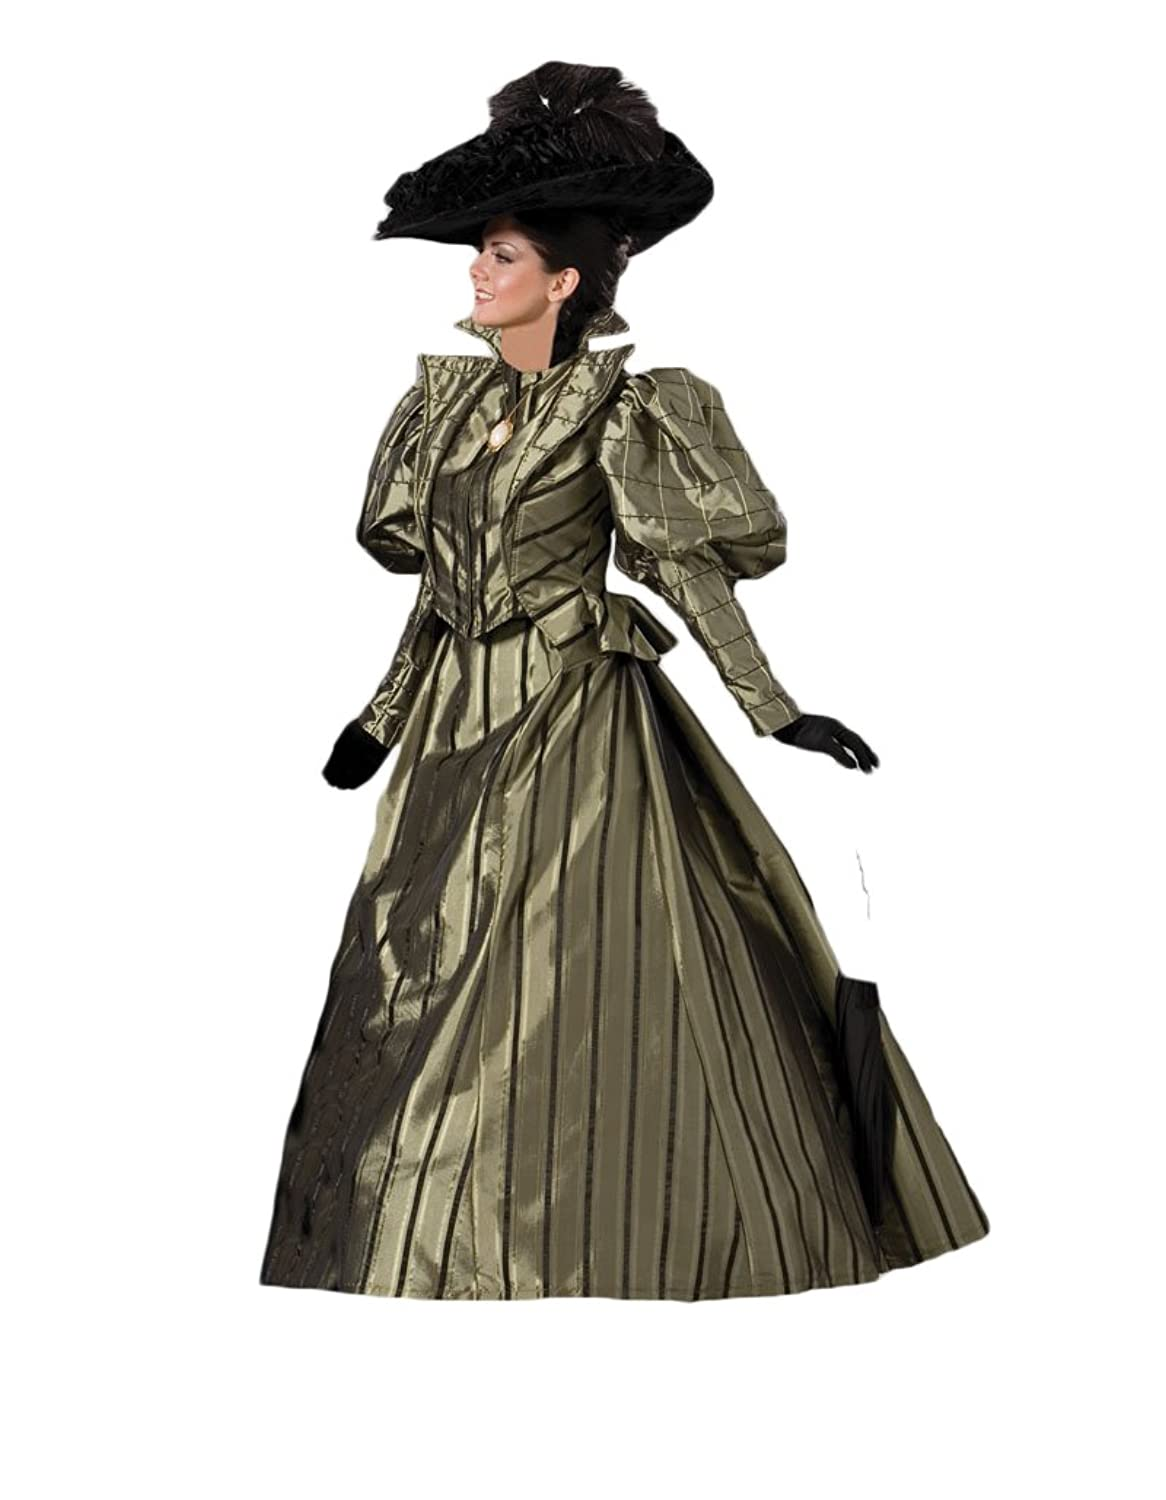 Victorian Costume Dresses & Skirts for Sale Womens Victorian Era Dress Theater Costume $379.99 AT vintagedancer.com